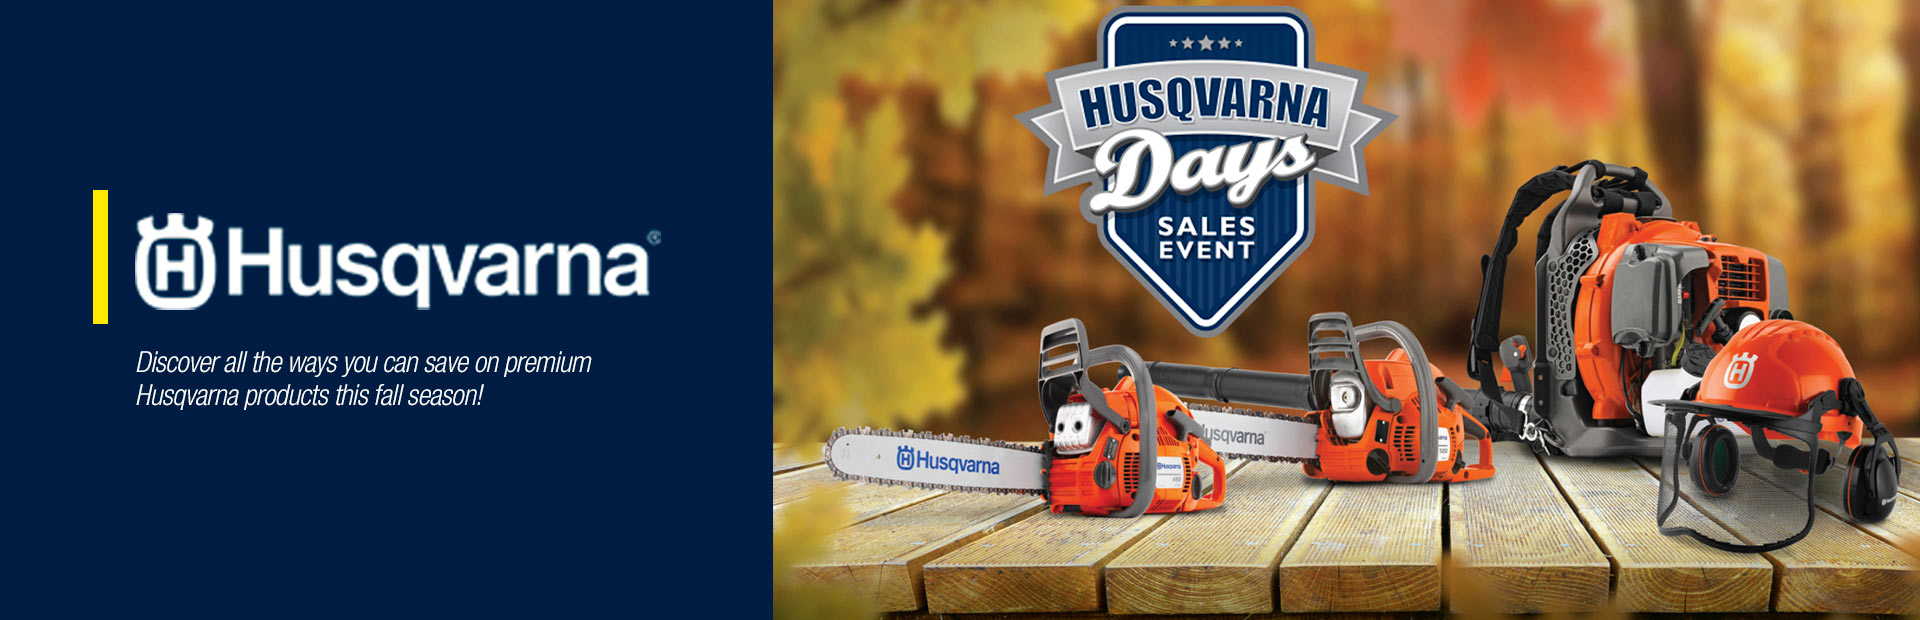 Husqvarna: Fall Husqvarna Days